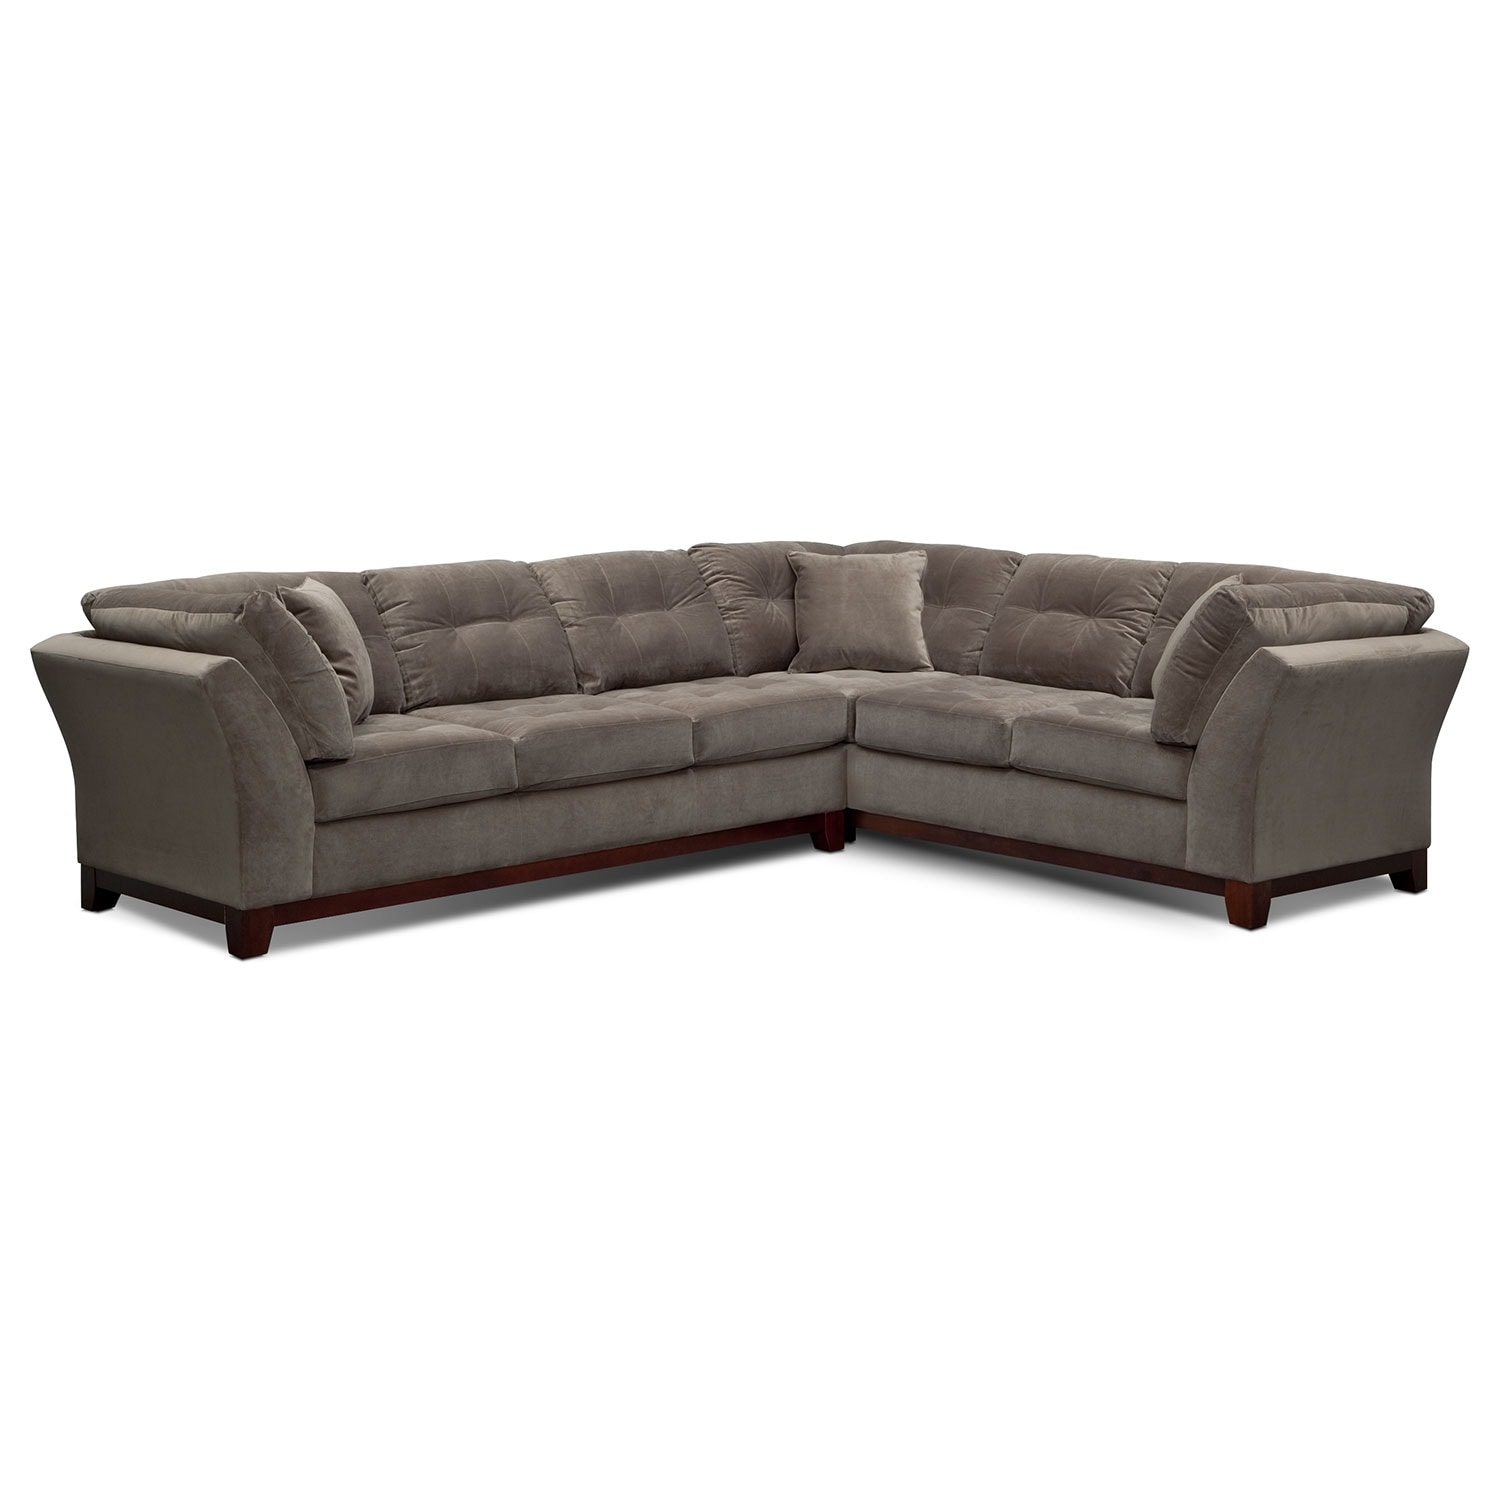 Living room furniture solace gray ii 2 pc sectional reverse